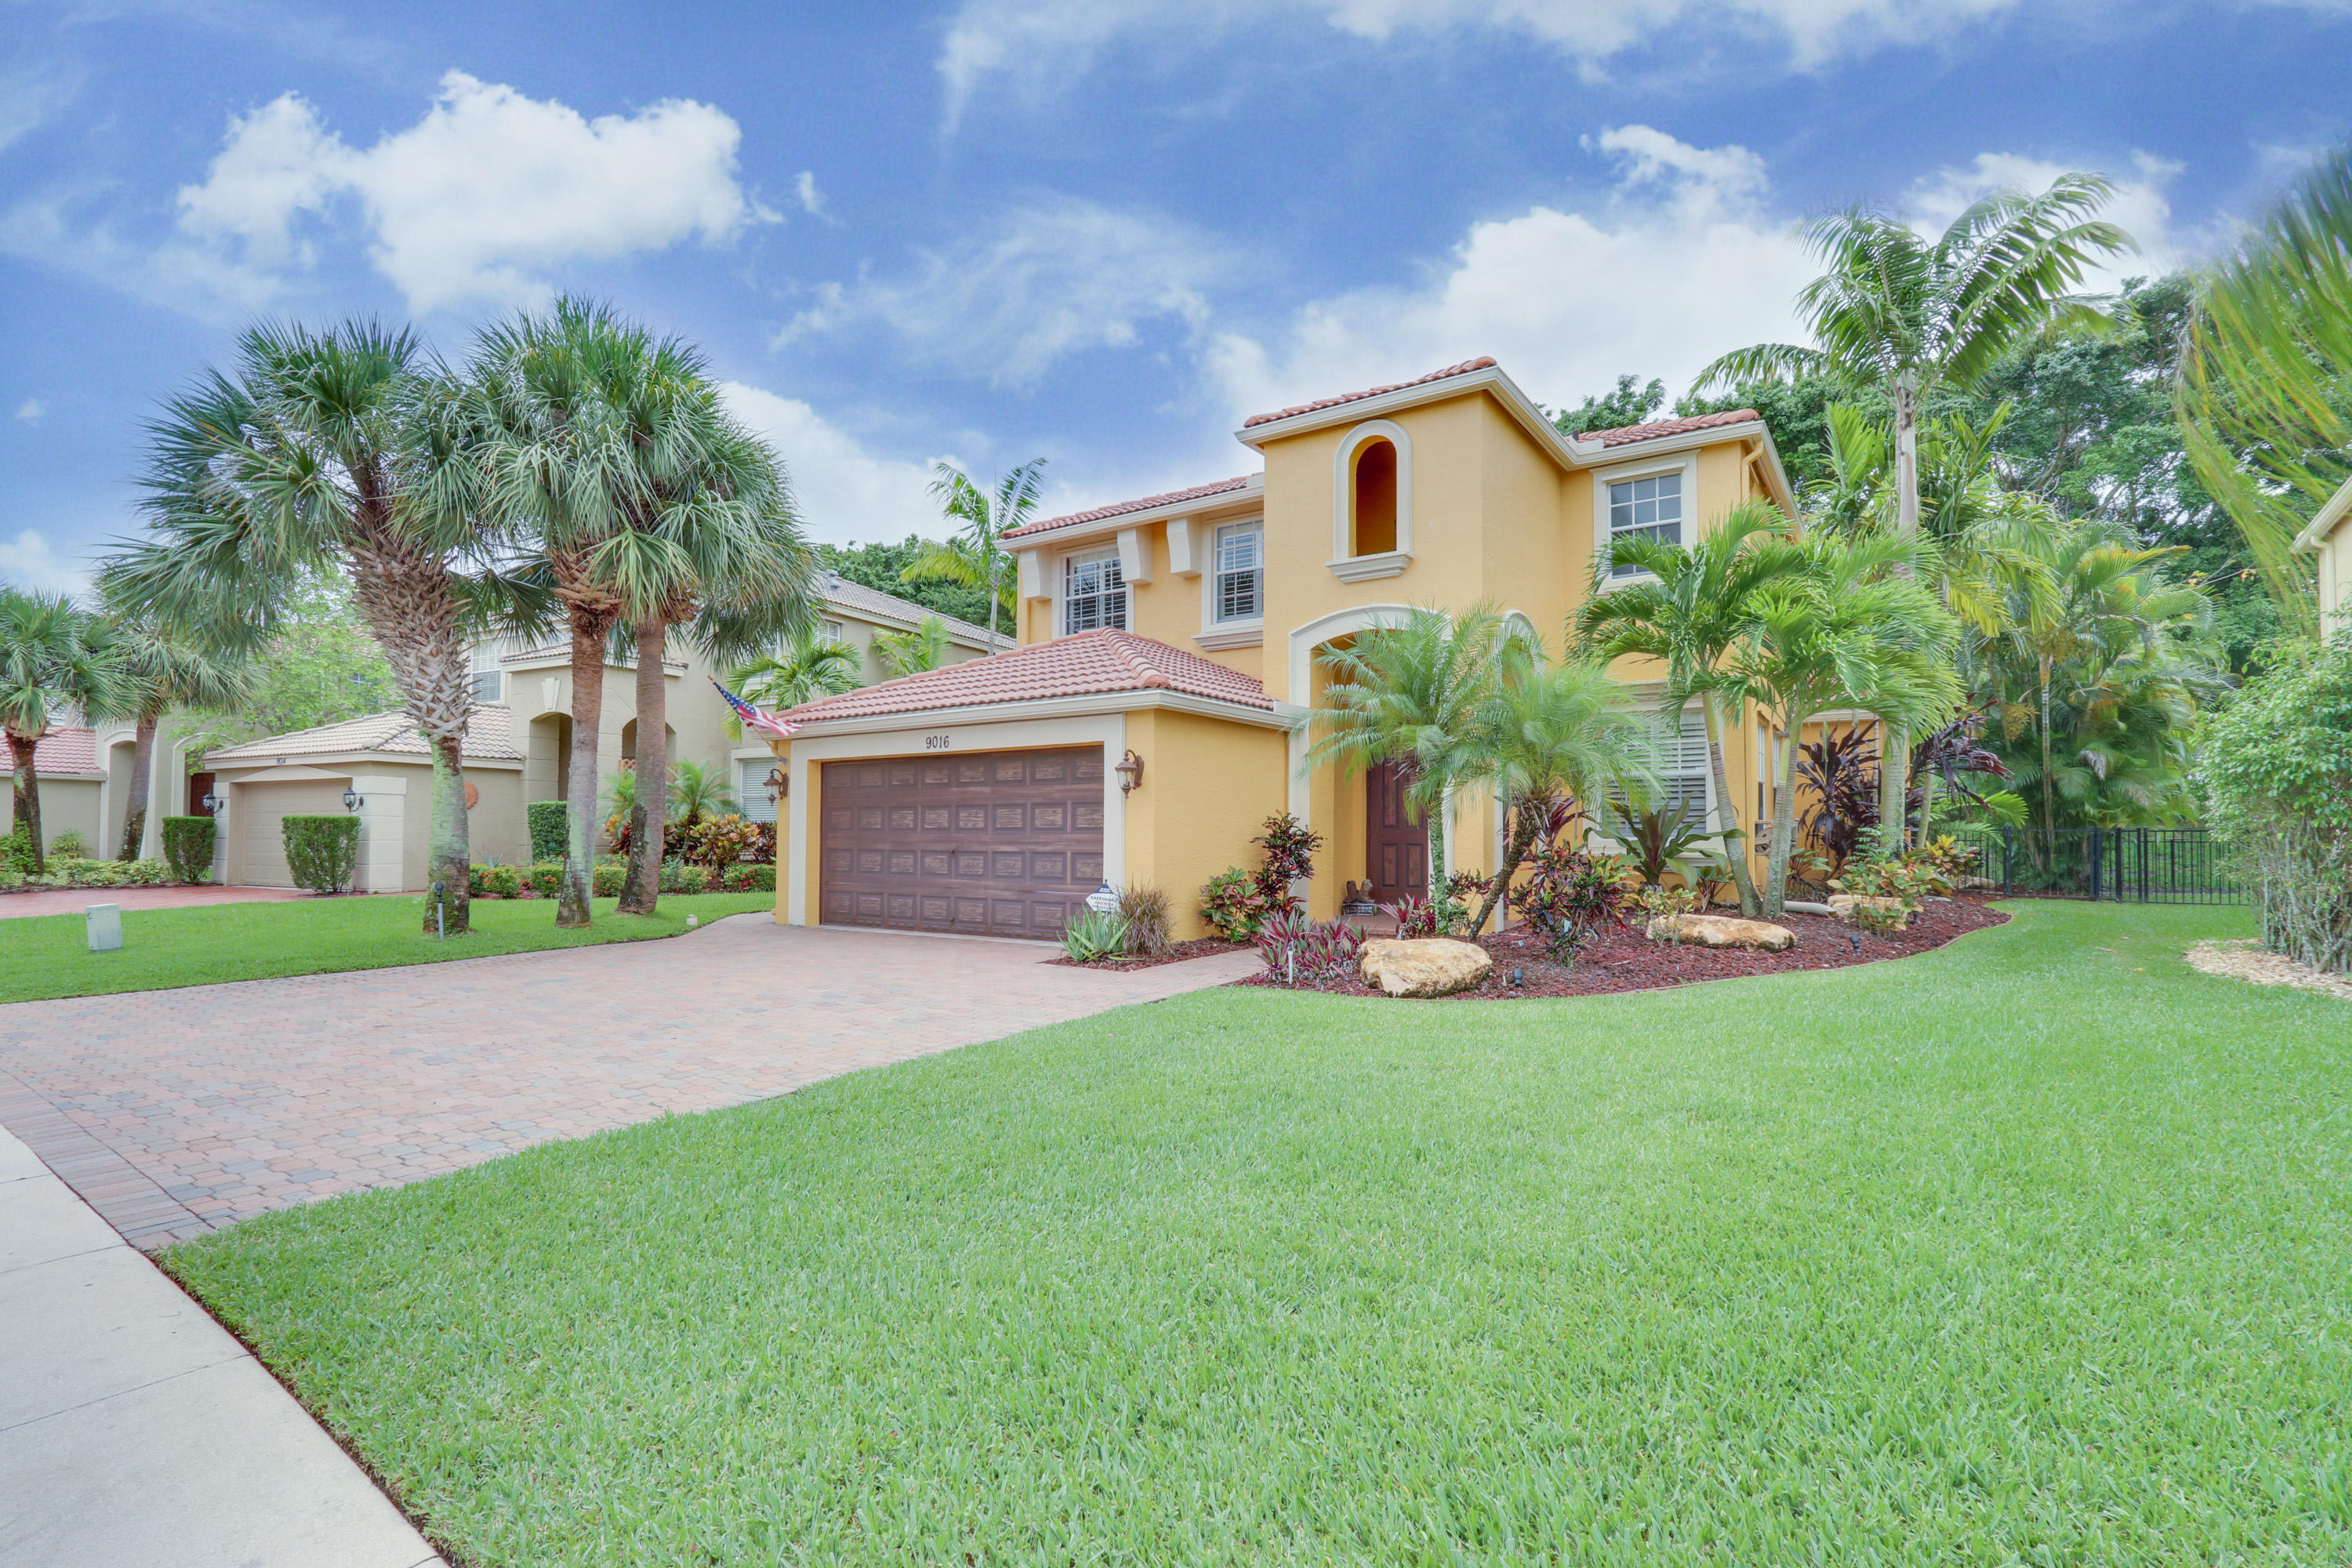 Home for sale in Olympia - Easton Wellington Florida